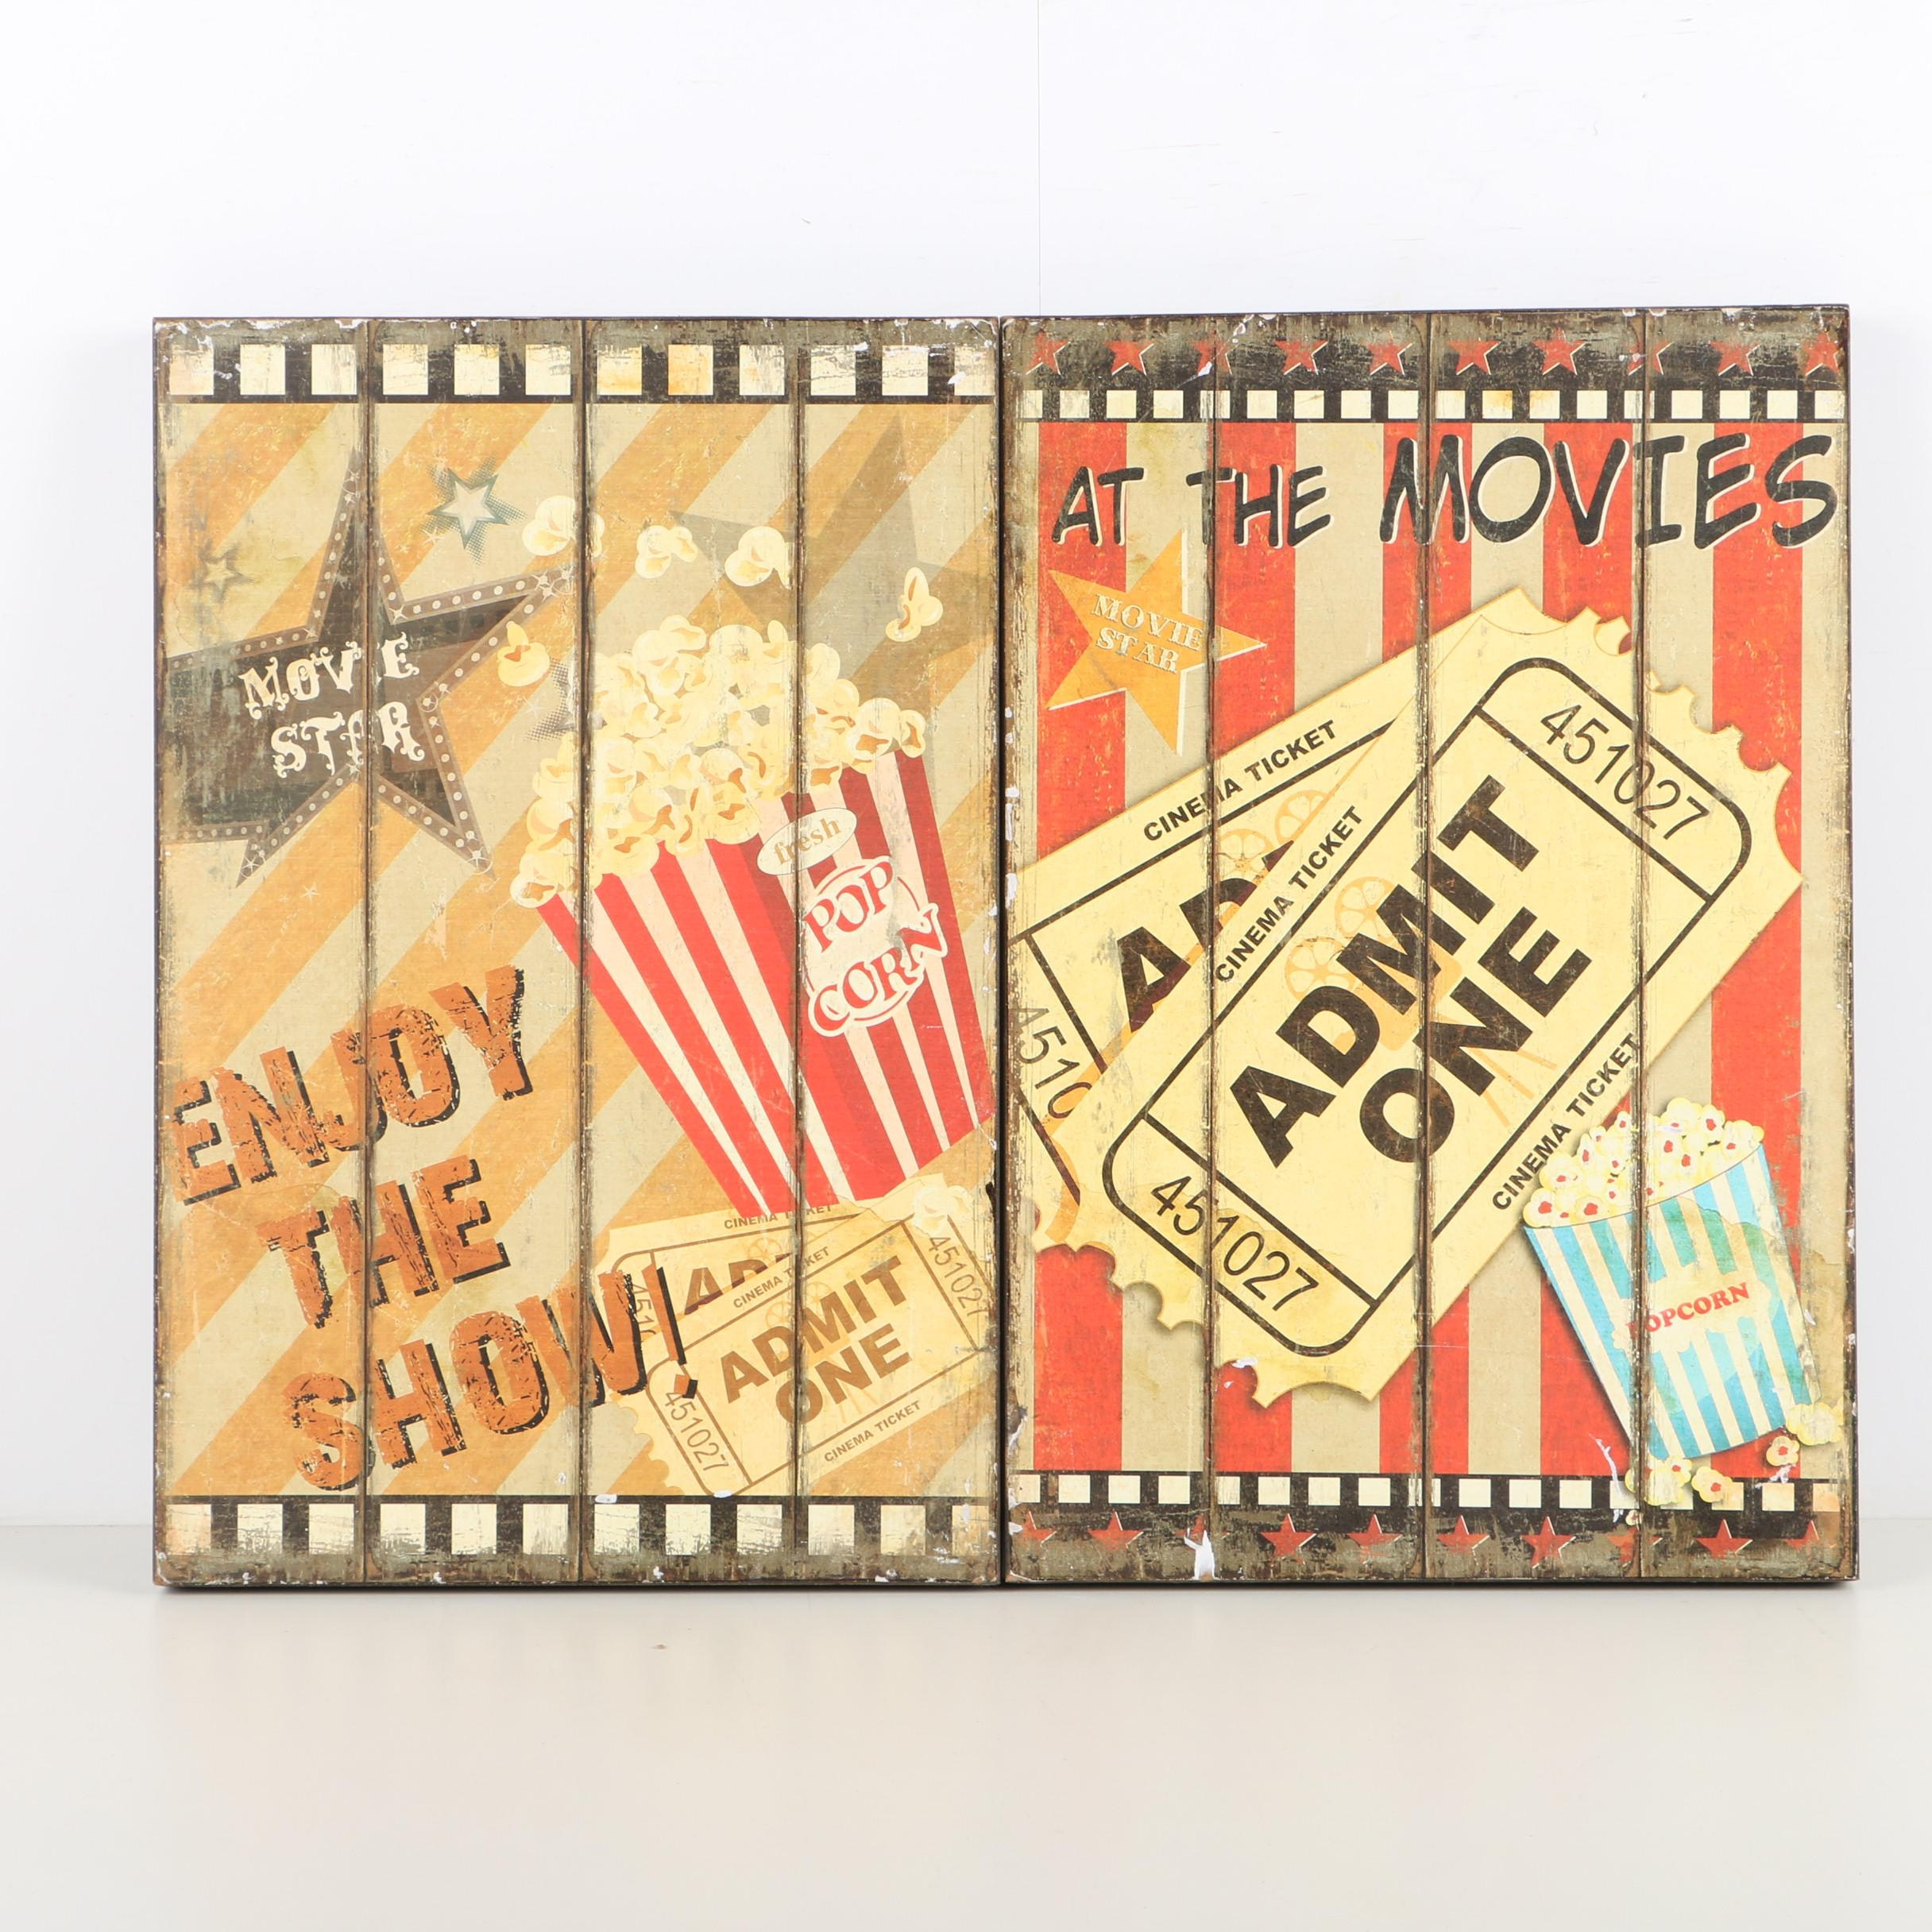 Pair of Giclée Prints on Paper with Movie Theater Themes